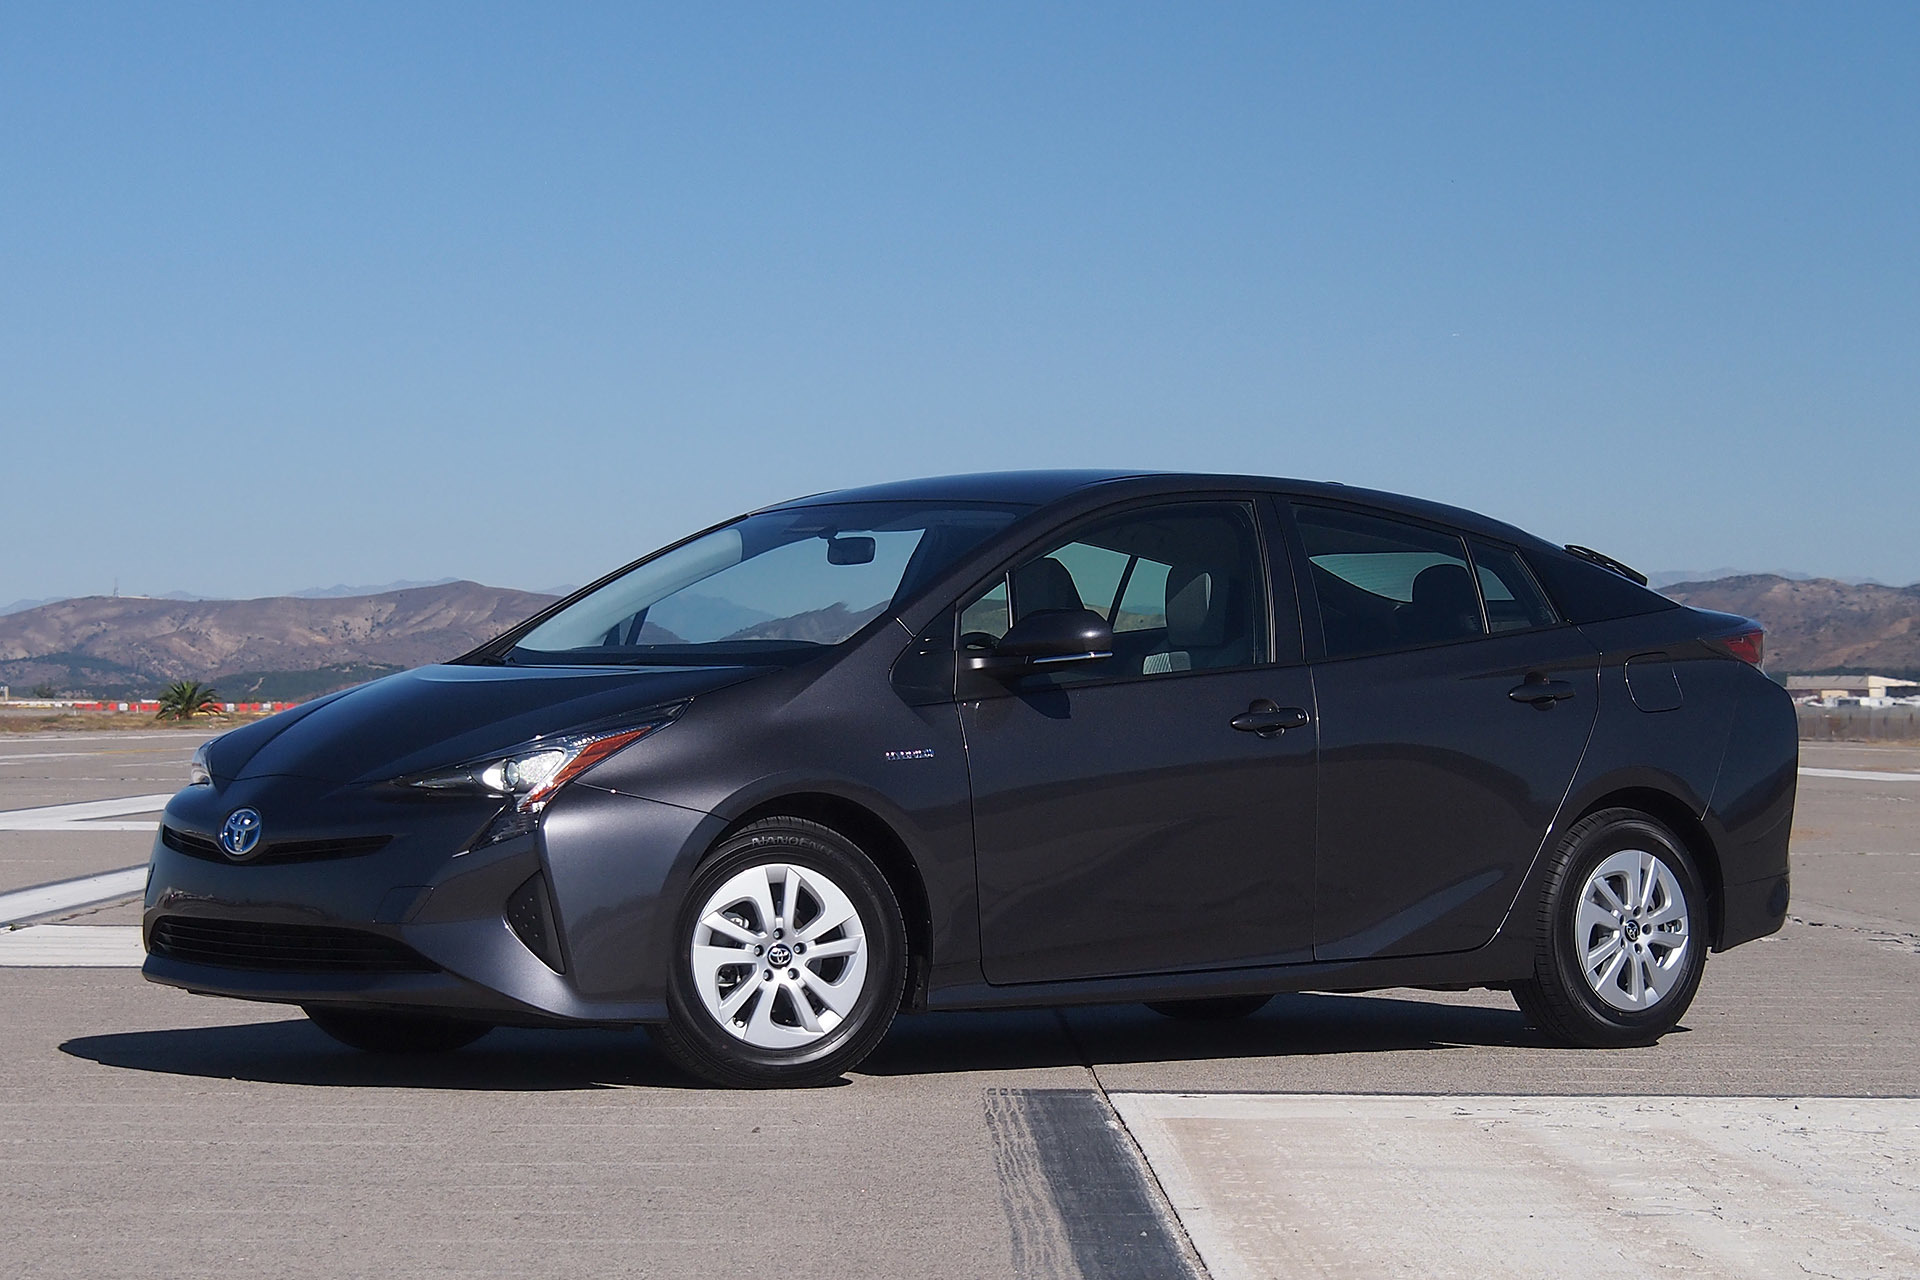 green car techvehi to new prius model over brand much a it hybrid is transportation world strategic highly take has do the in en news toyota for best with selling images first